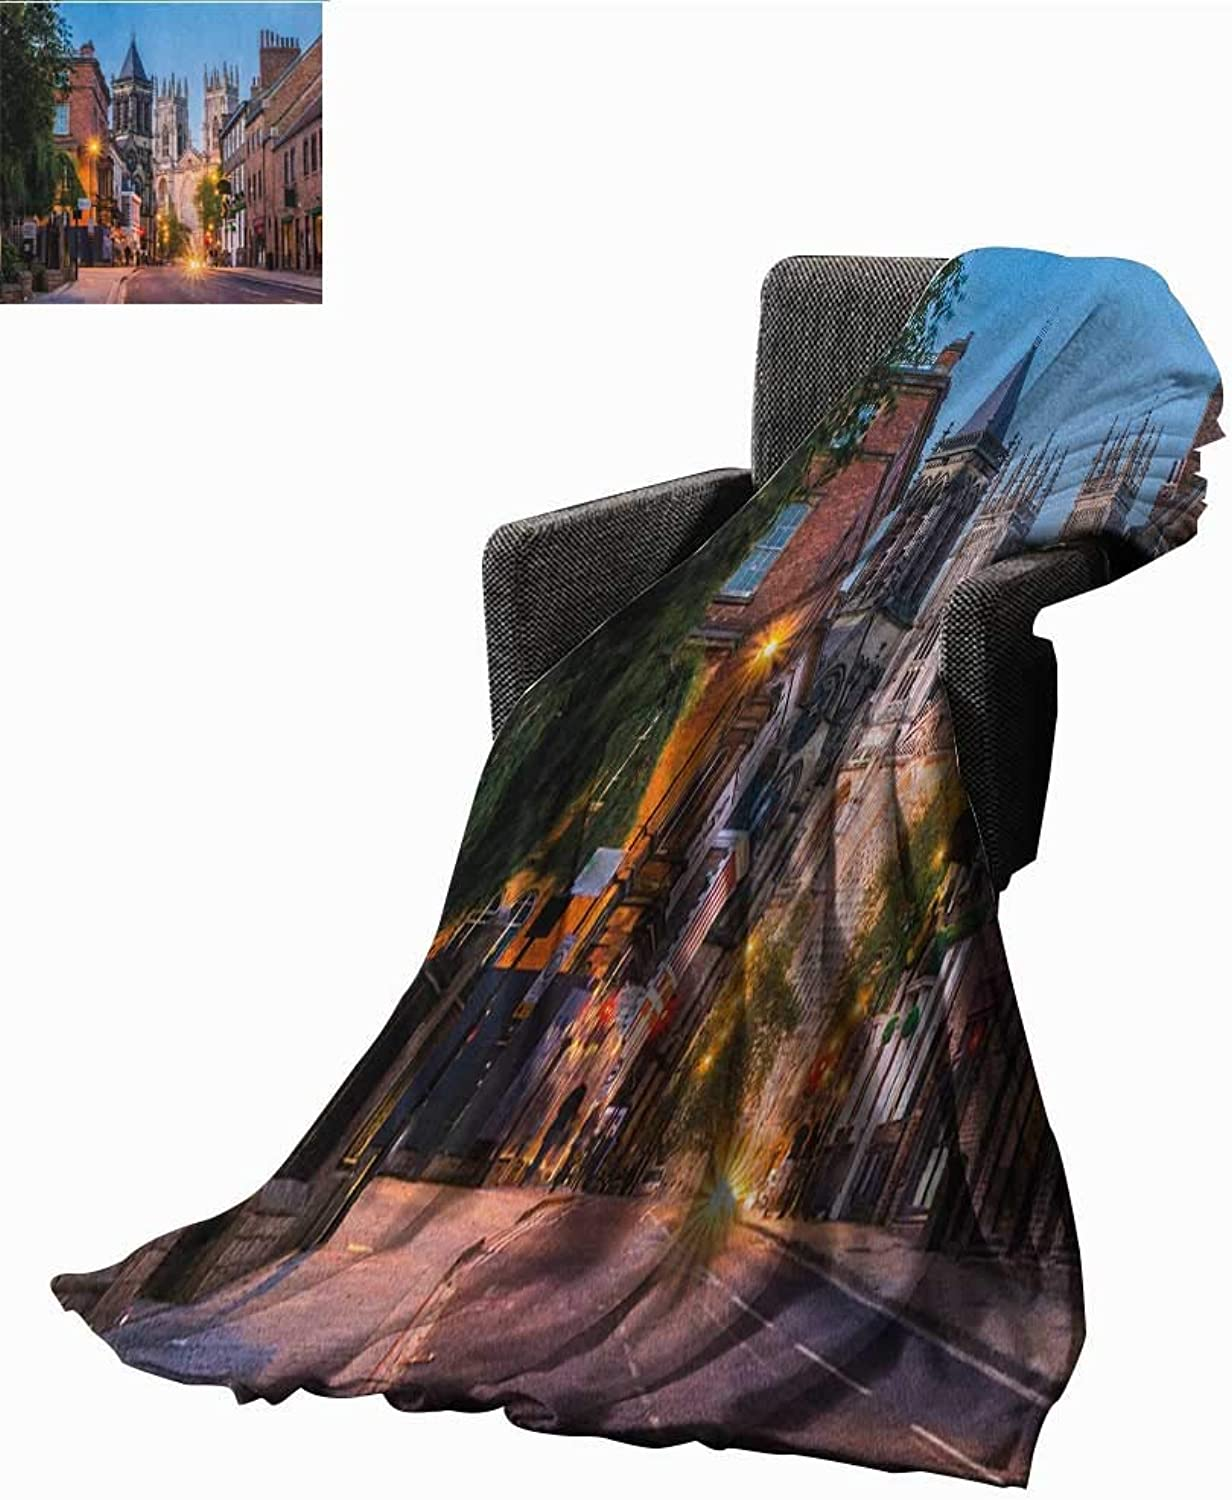 Sunsunshine Bed or Couch 60  x 35 Gothic Lightweight Blanket York Minster View in Evening Cityscape Historical Landmark Street in The England Print Summer Quilt Comforter Multicolor